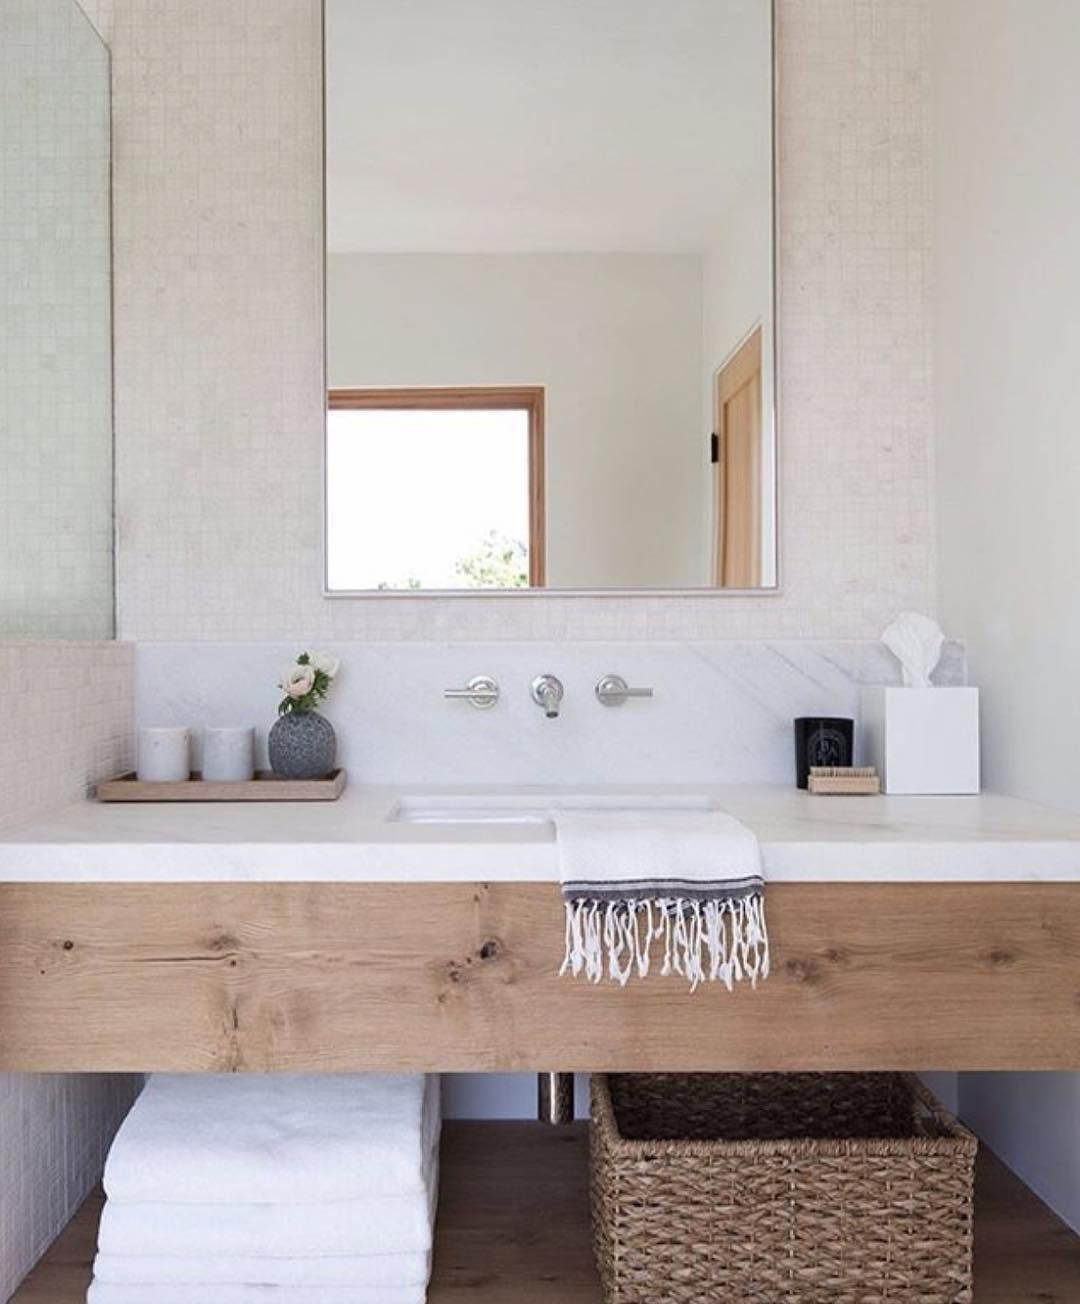 How Amazing Is This Vanity!!! The Simplicity Of The Chunky